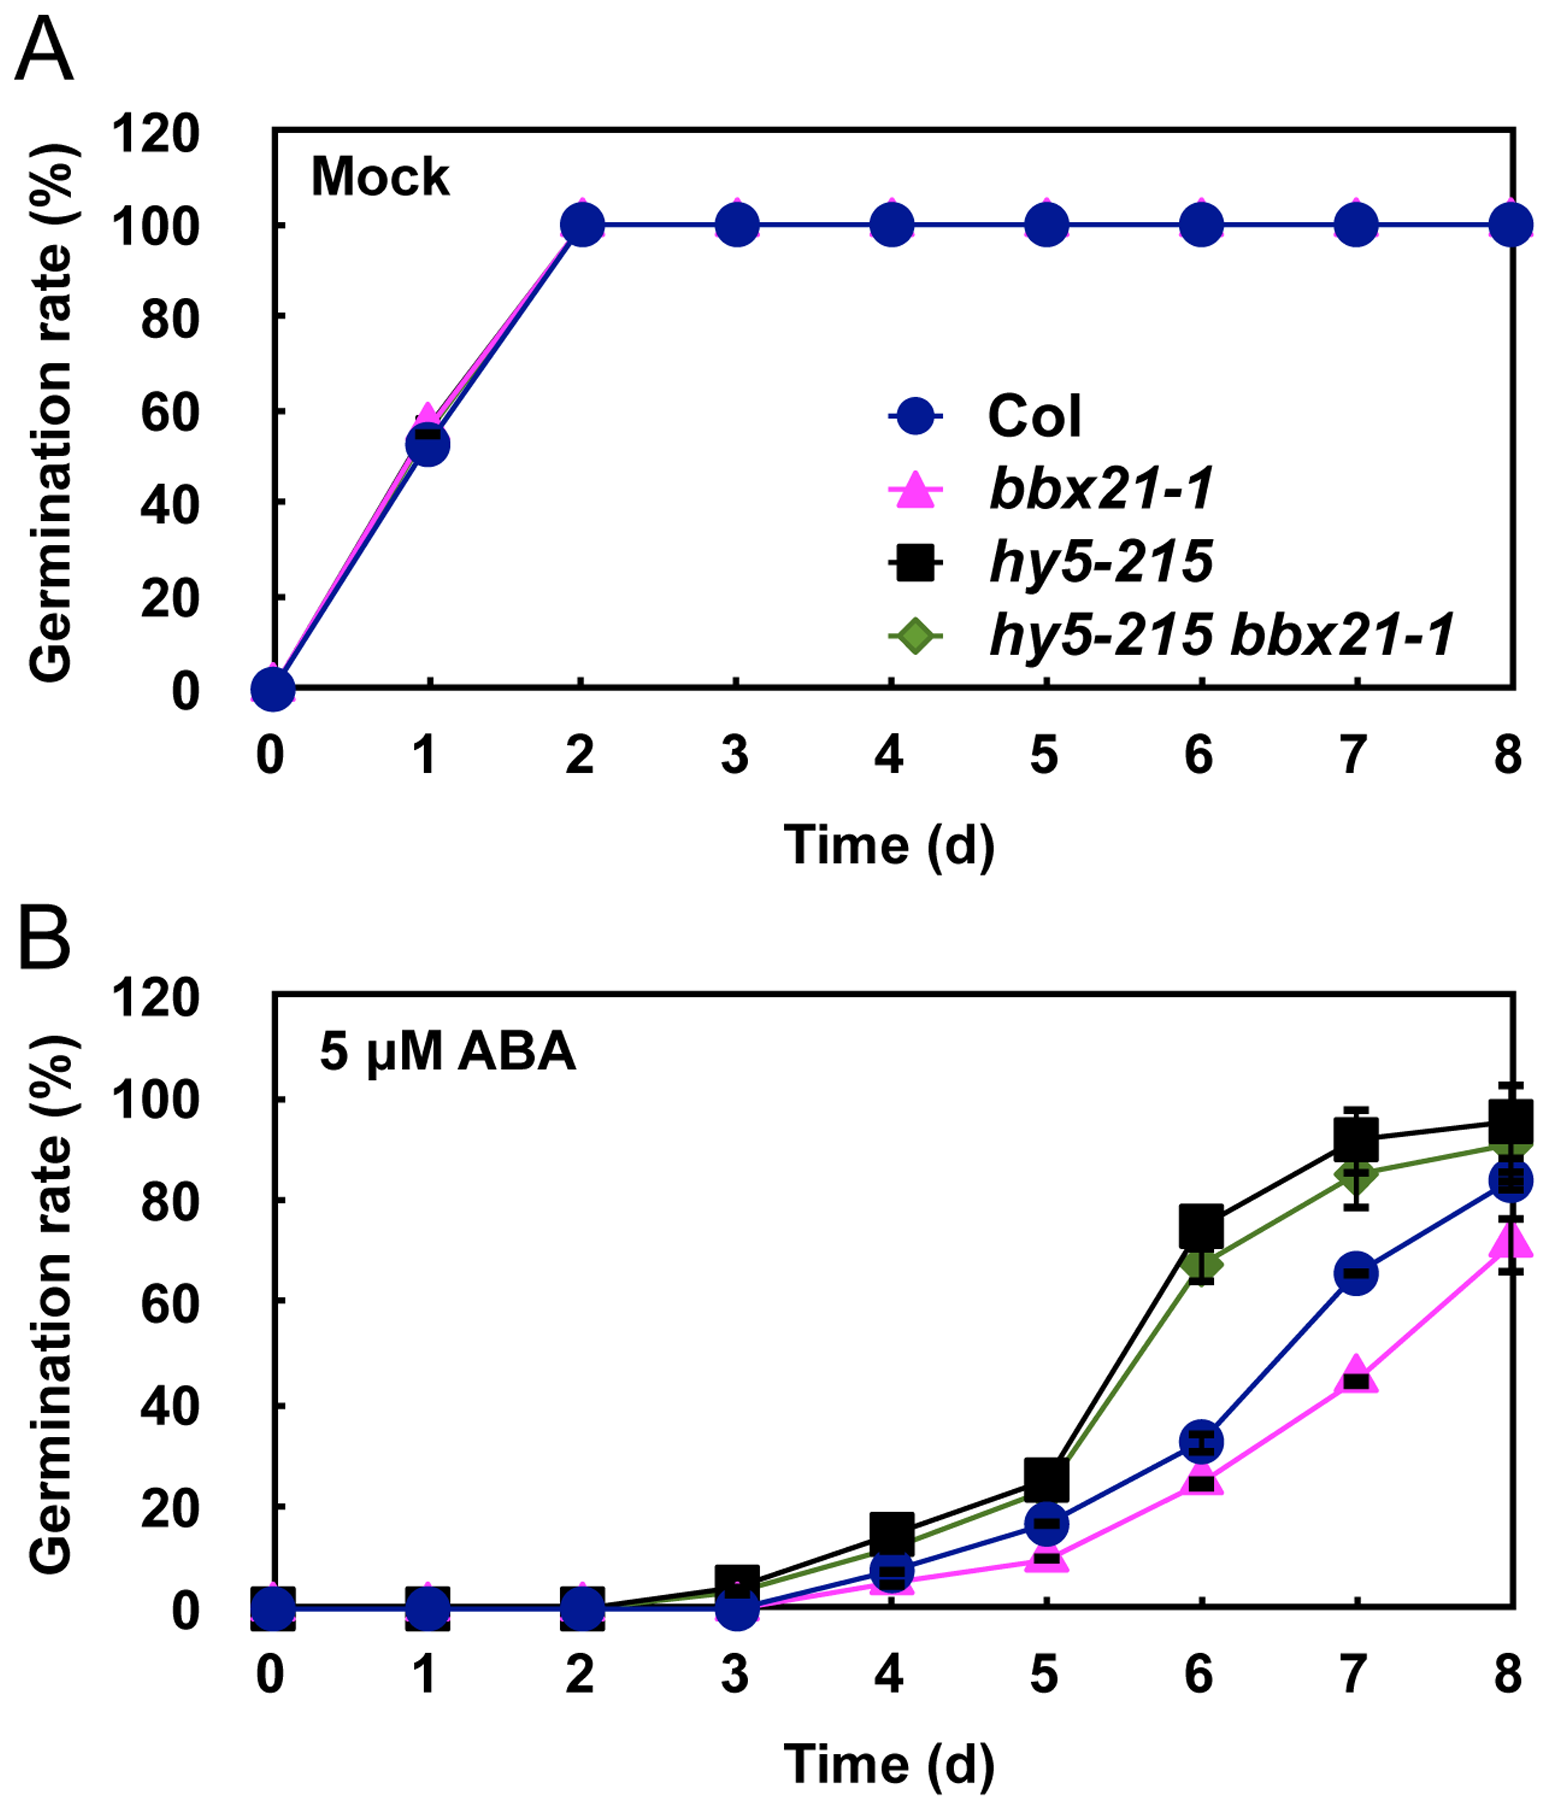 The <i>hy5 bbx21</i> mutants are insensitive to ABA during germination.